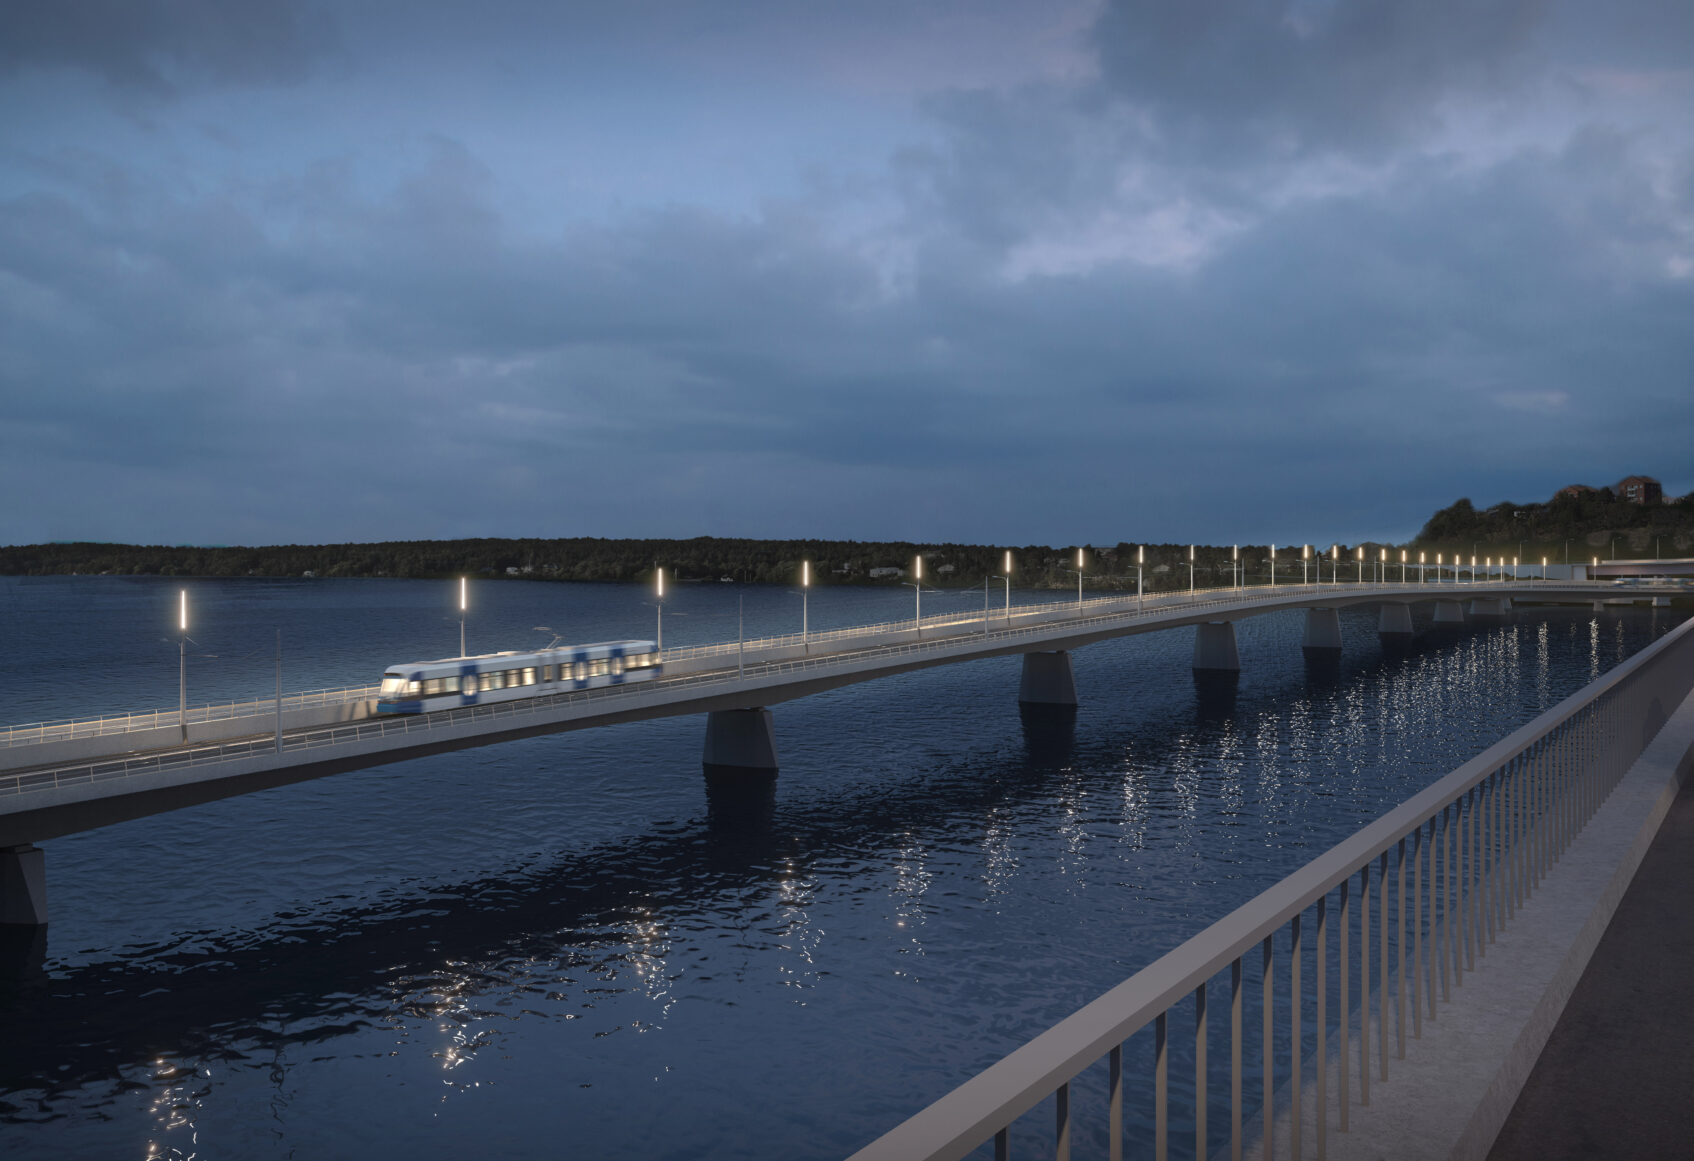 Dusk view of trams on the new bridge and cars on the original bridge